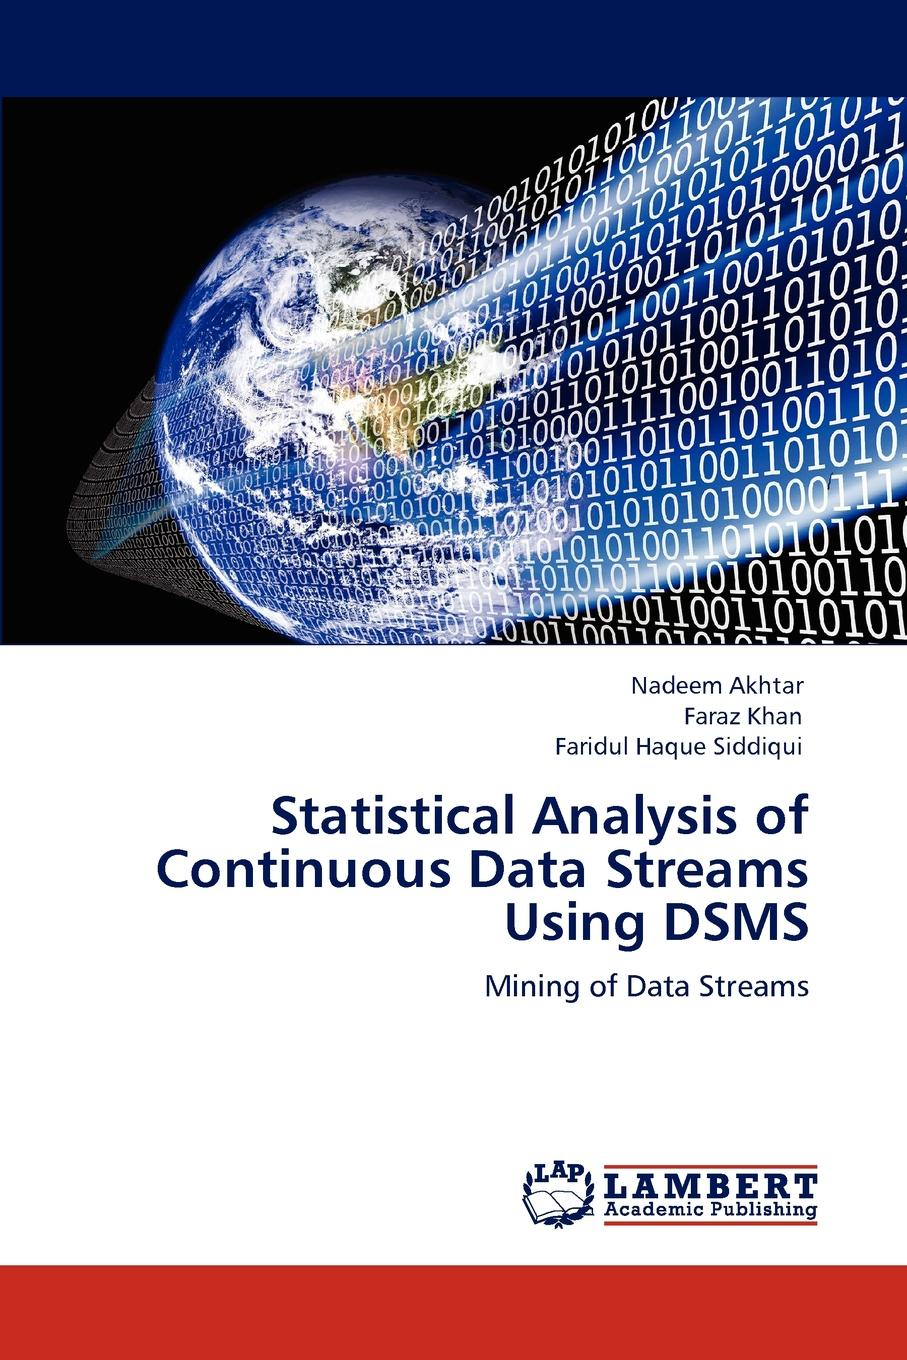 Nadeem Akhtar, Faraz Khan, Faridul Haque Siddiqui Statistical Analysis of Continuous Data Streams Using DSMS цена 2017